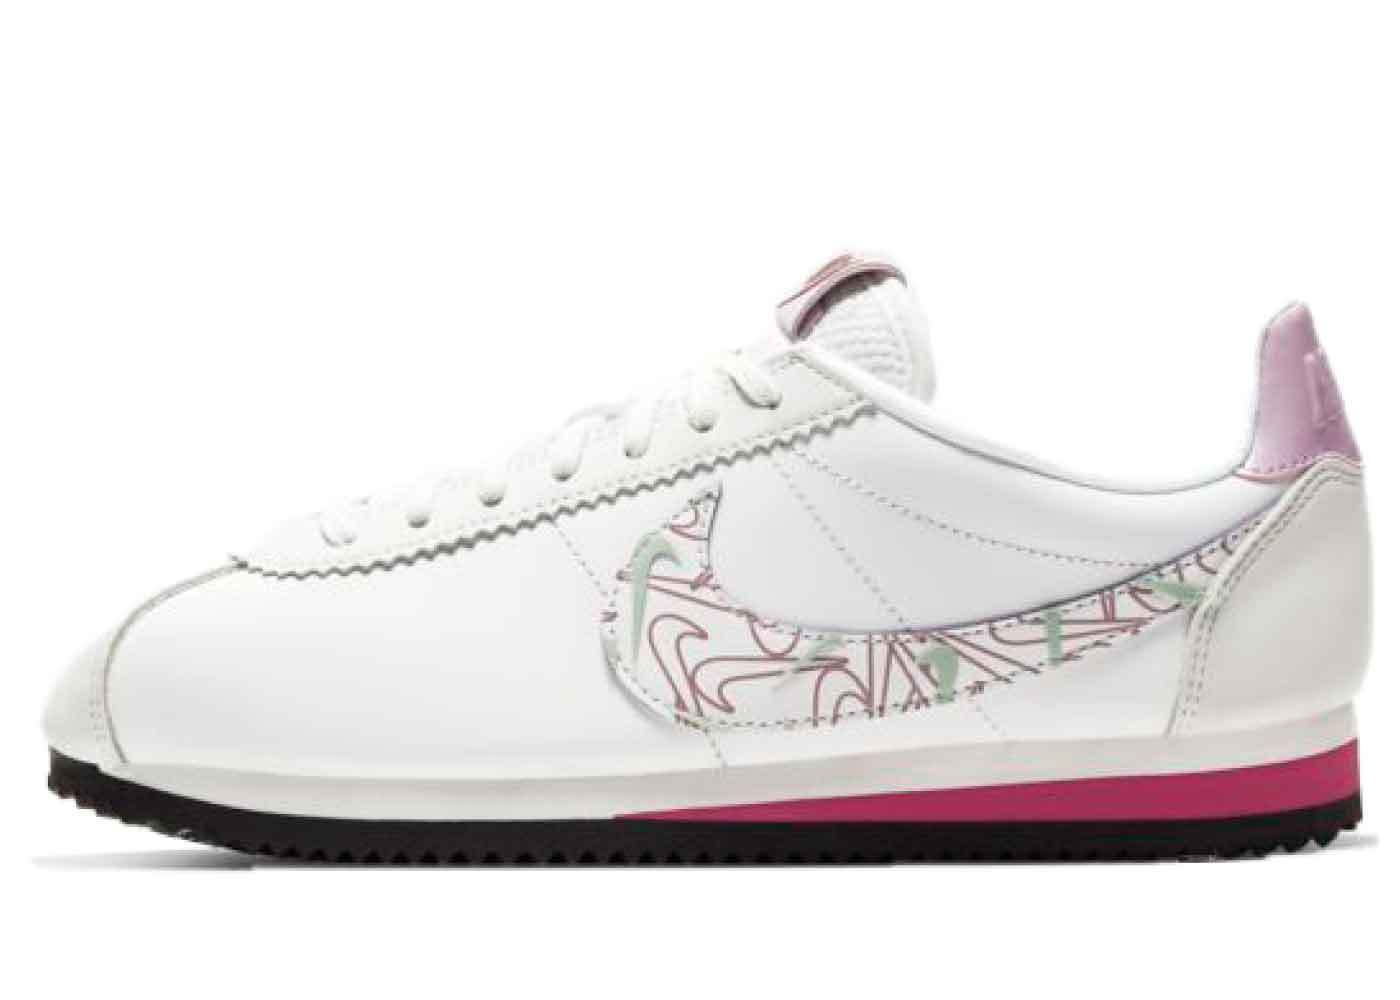 Nike Cortez Summit White/Noble Red Womensの写真